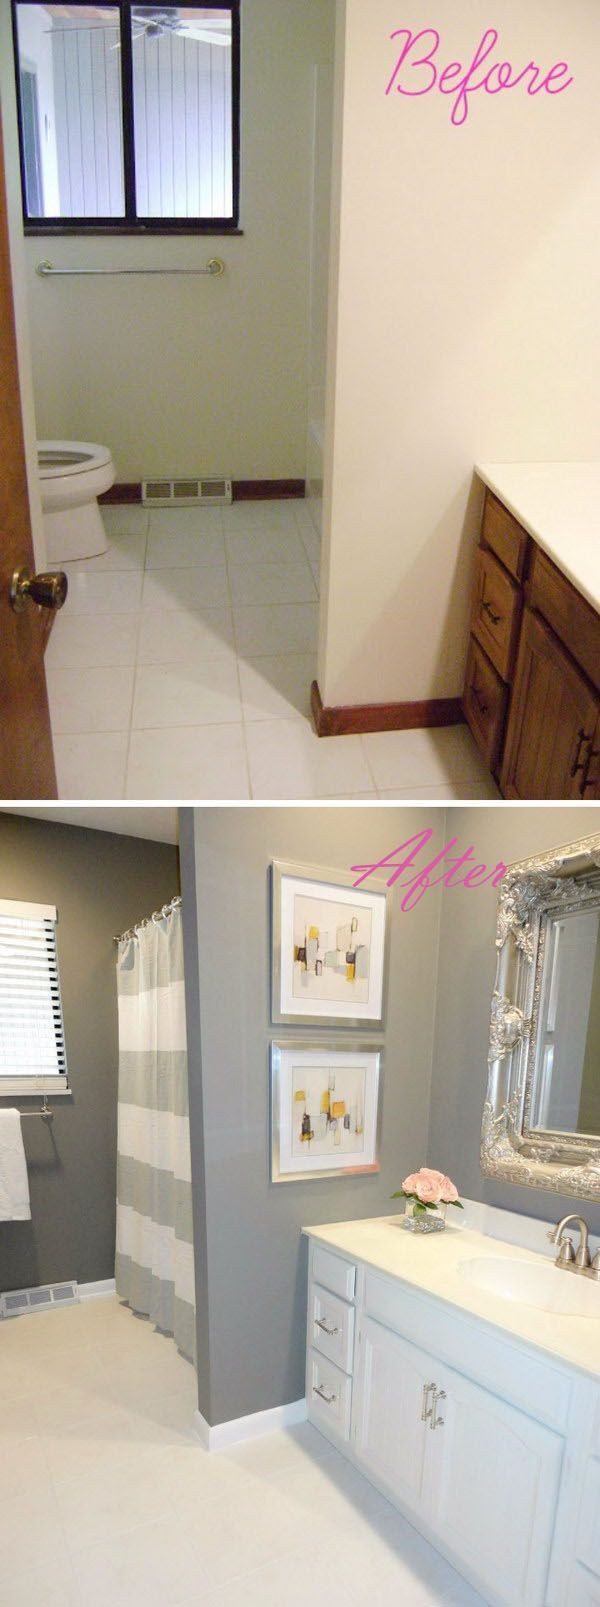 Before and after 20 awesome bathroom makeovers diy bathroom remodel budgeting and house Cheap bathroom remodel before and after